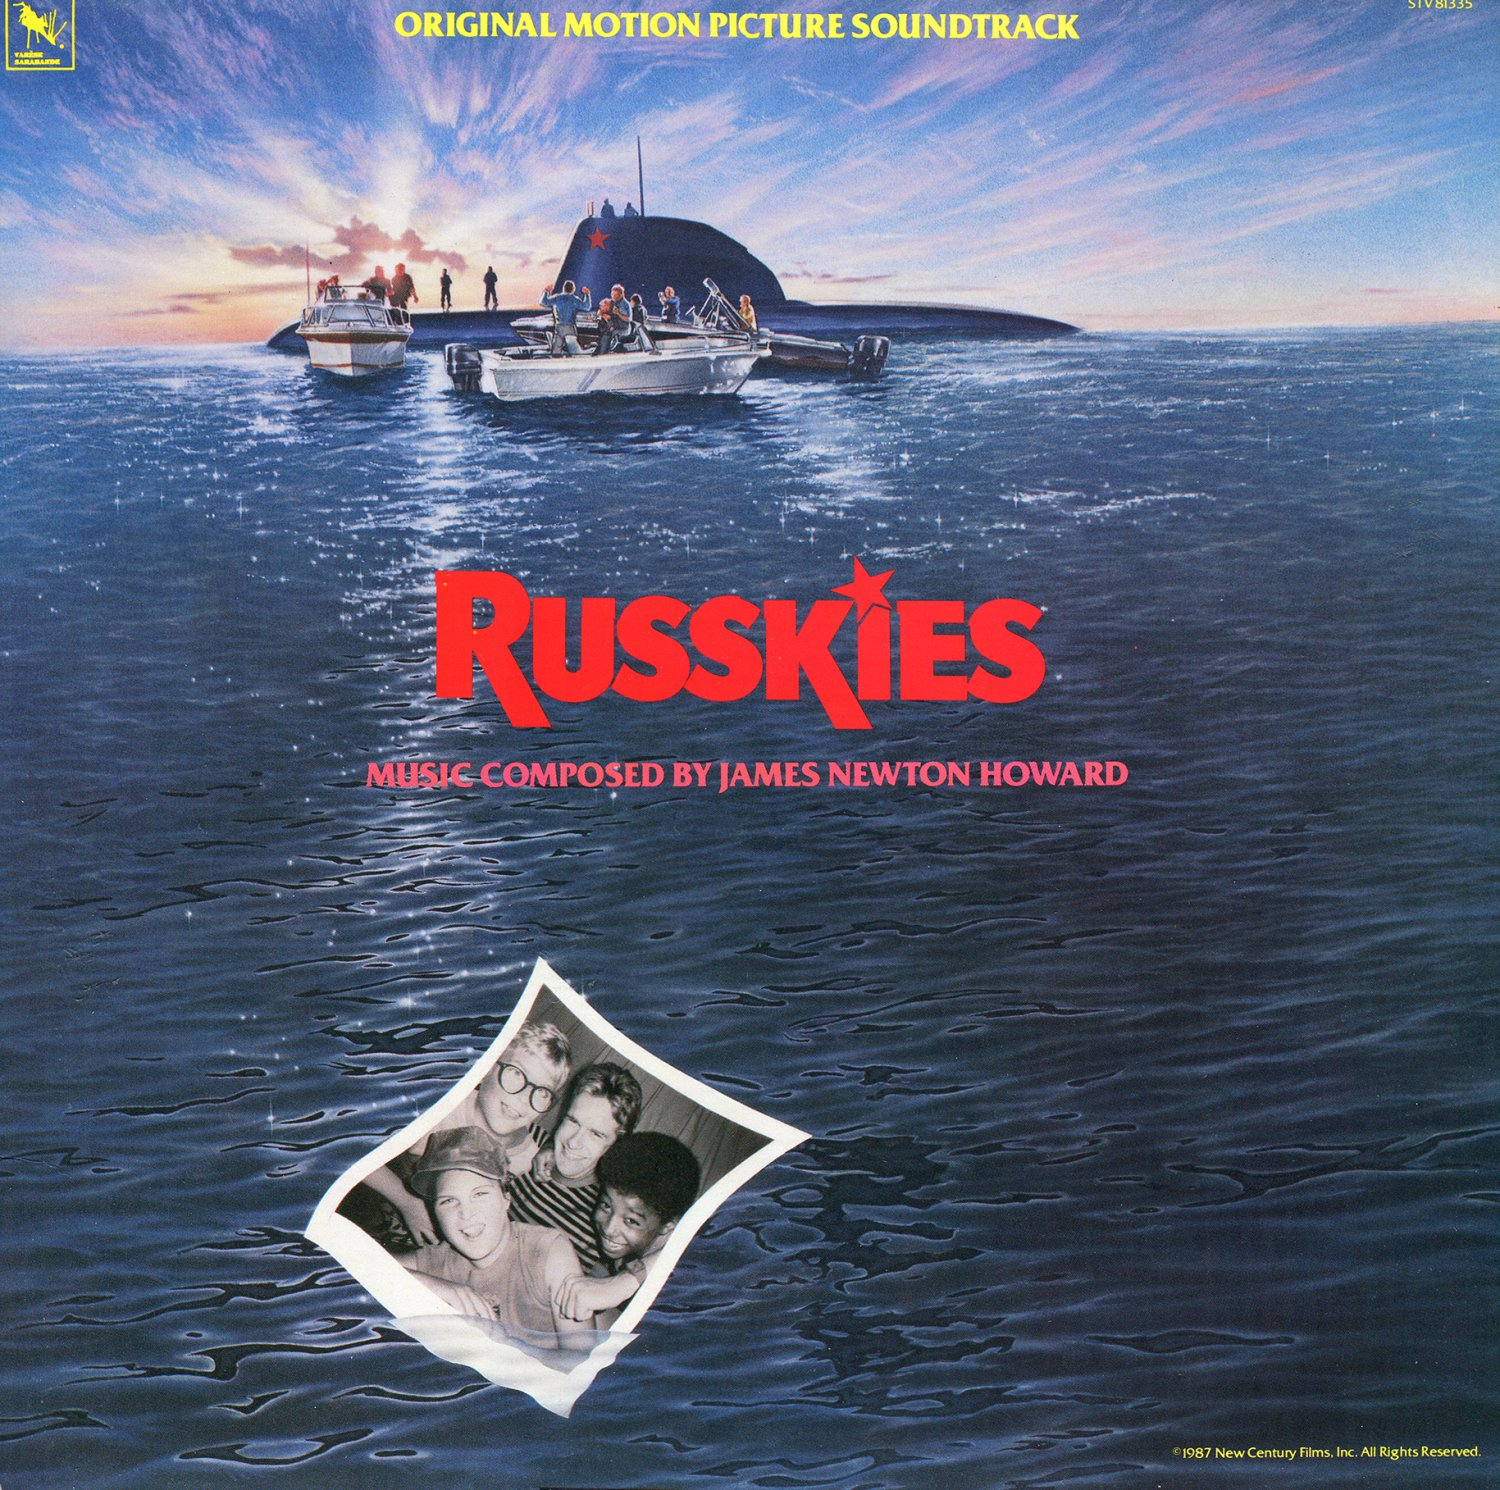 Russkies - Original Soundtrack, James Newton Howard OST LP/CD